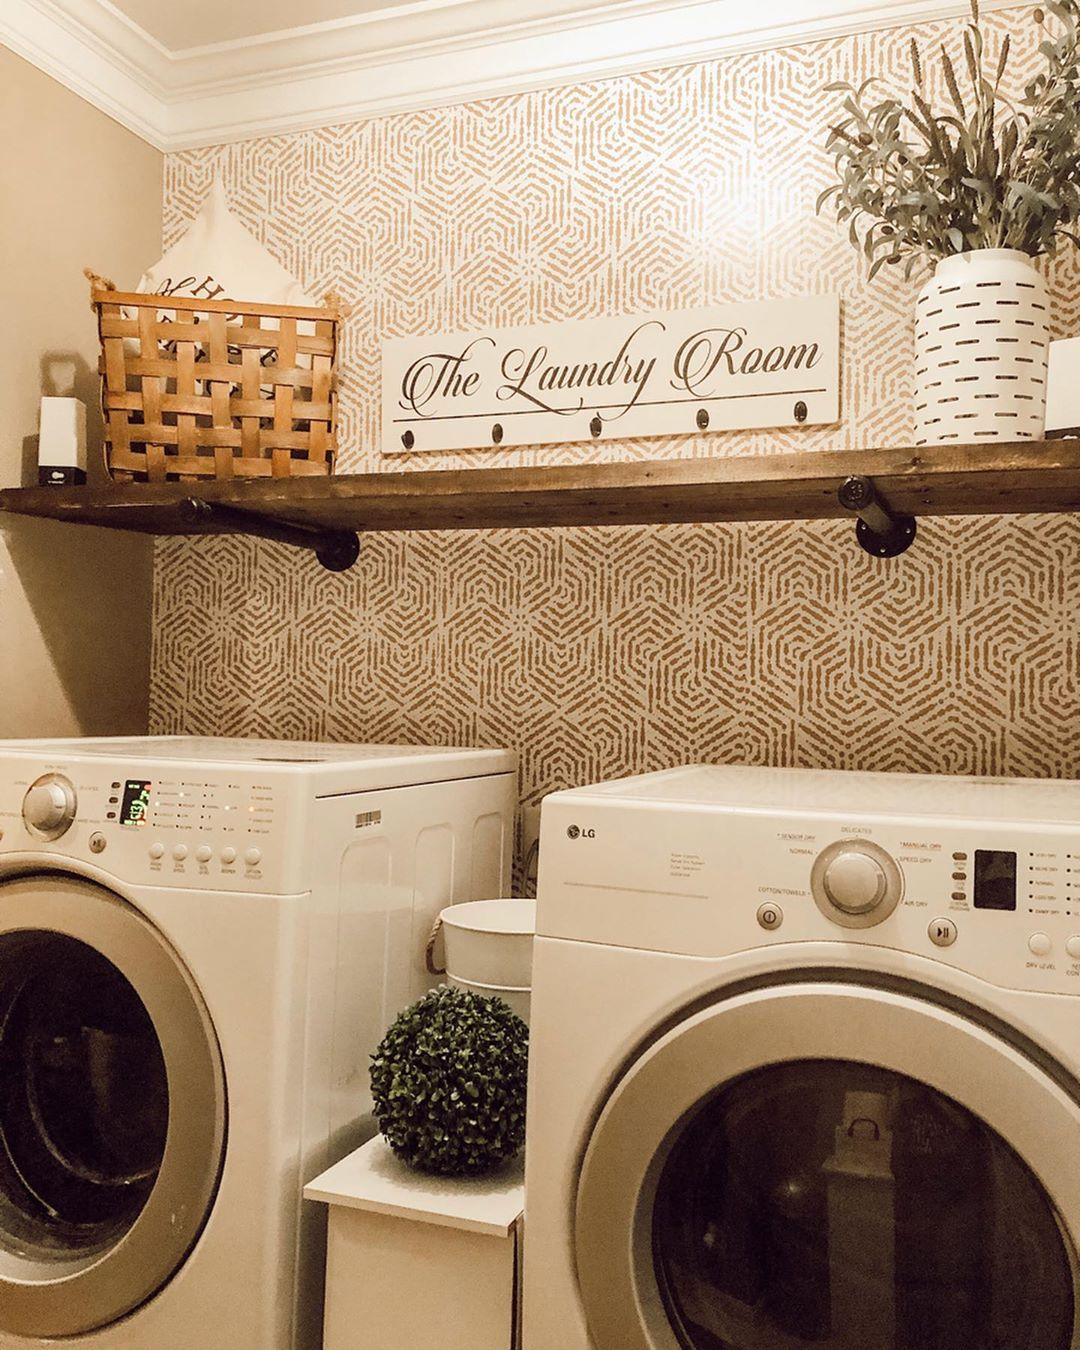 dallas winston in 2020 laundry room wallpaper laundry on laundry room wall covering ideas id=28872